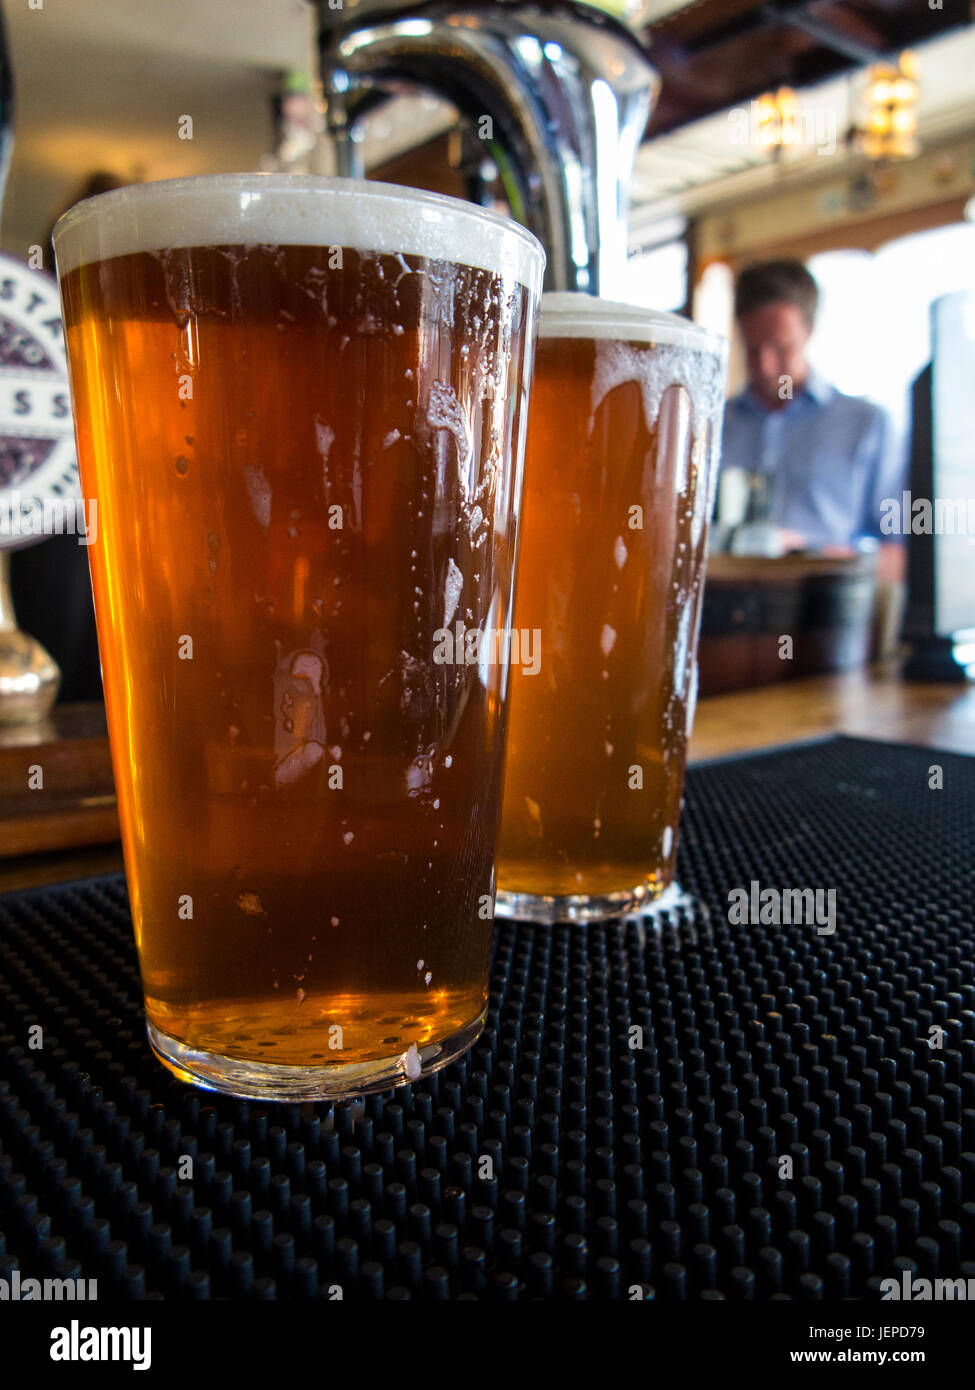 TWO PINTS OF BITTER AWAIT DRINKING IN A LONDON PUB - Stock Image